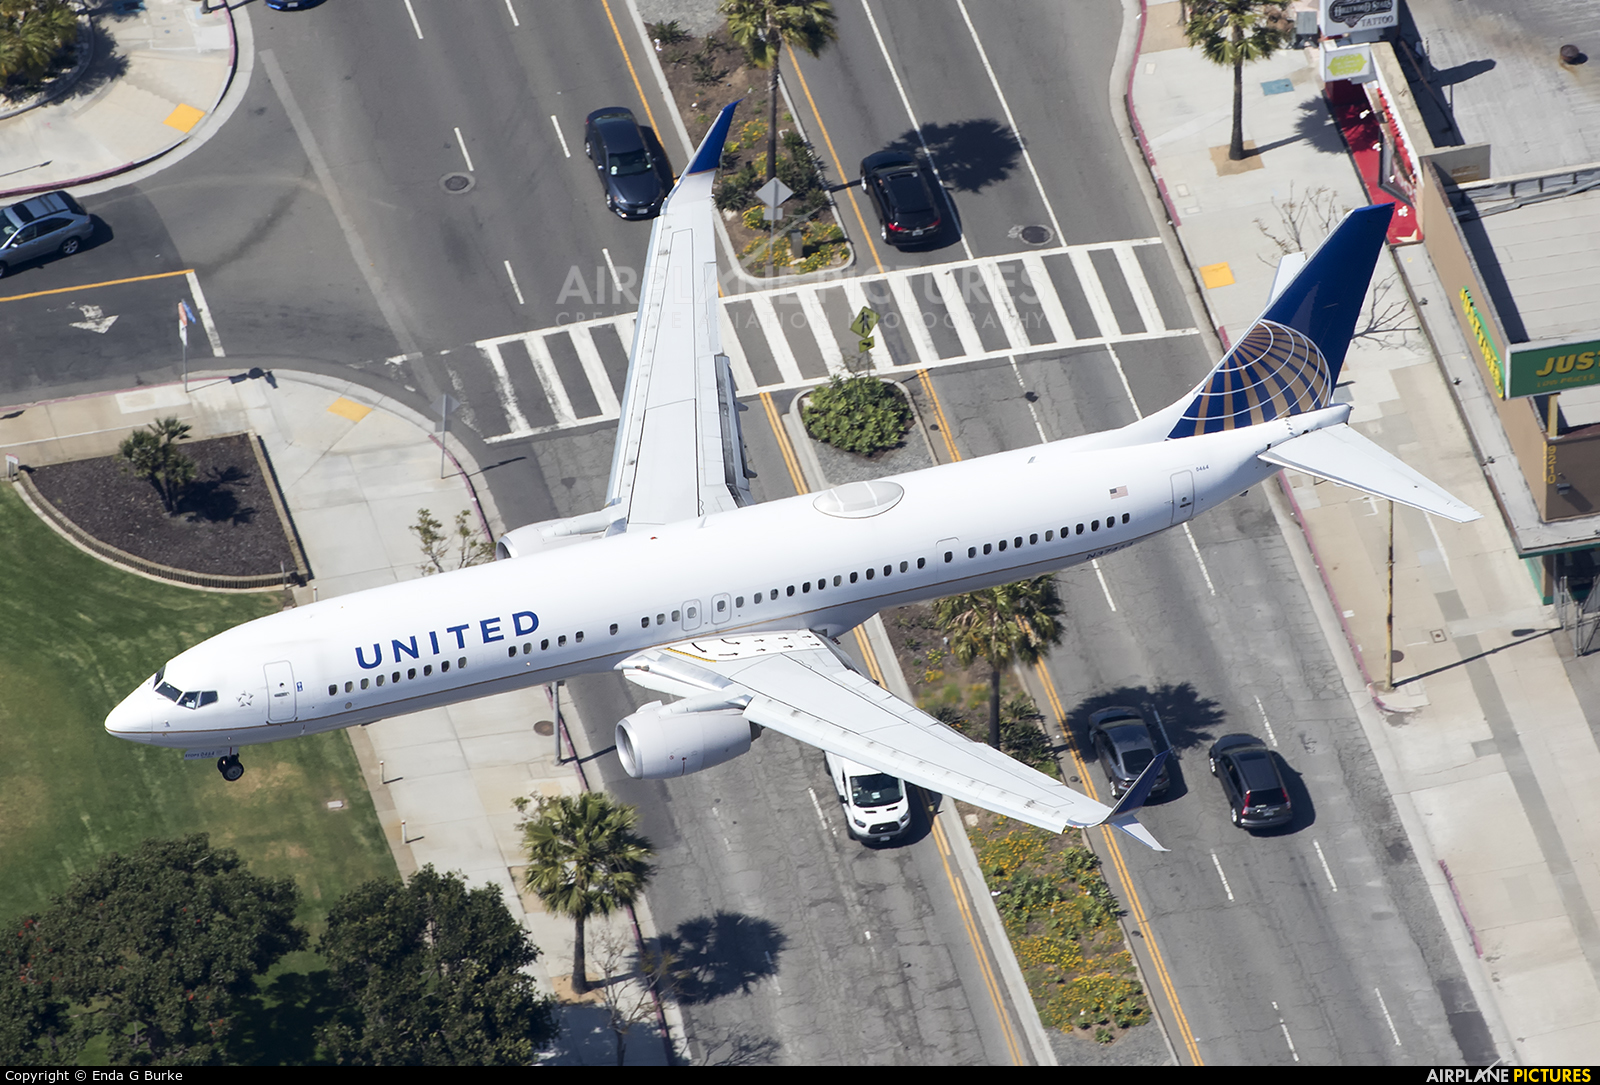 United Airlines N37464 aircraft at Los Angeles Intl